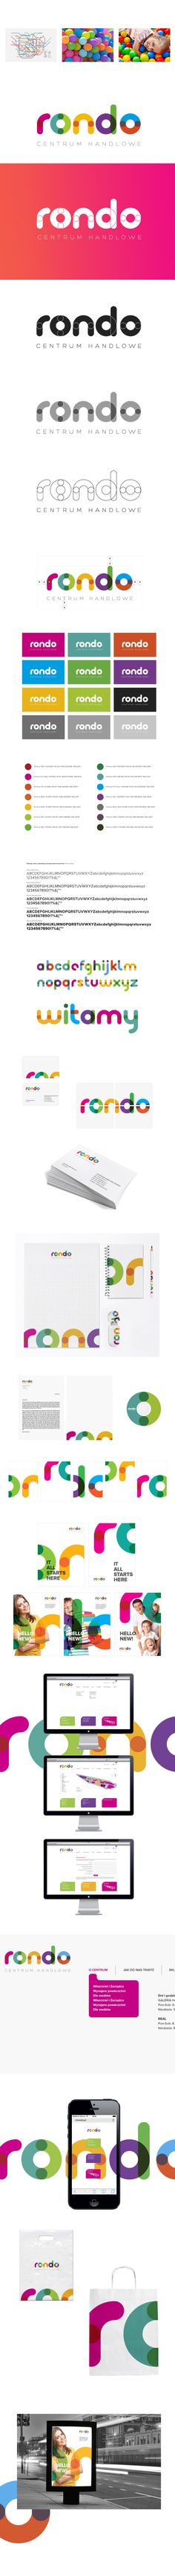 shopping mall RONDO re-branding by piotrek bdsn okrasa, via Behance http://jrstudioweb.com/diseno-grafico/diseno-de-logotipos/